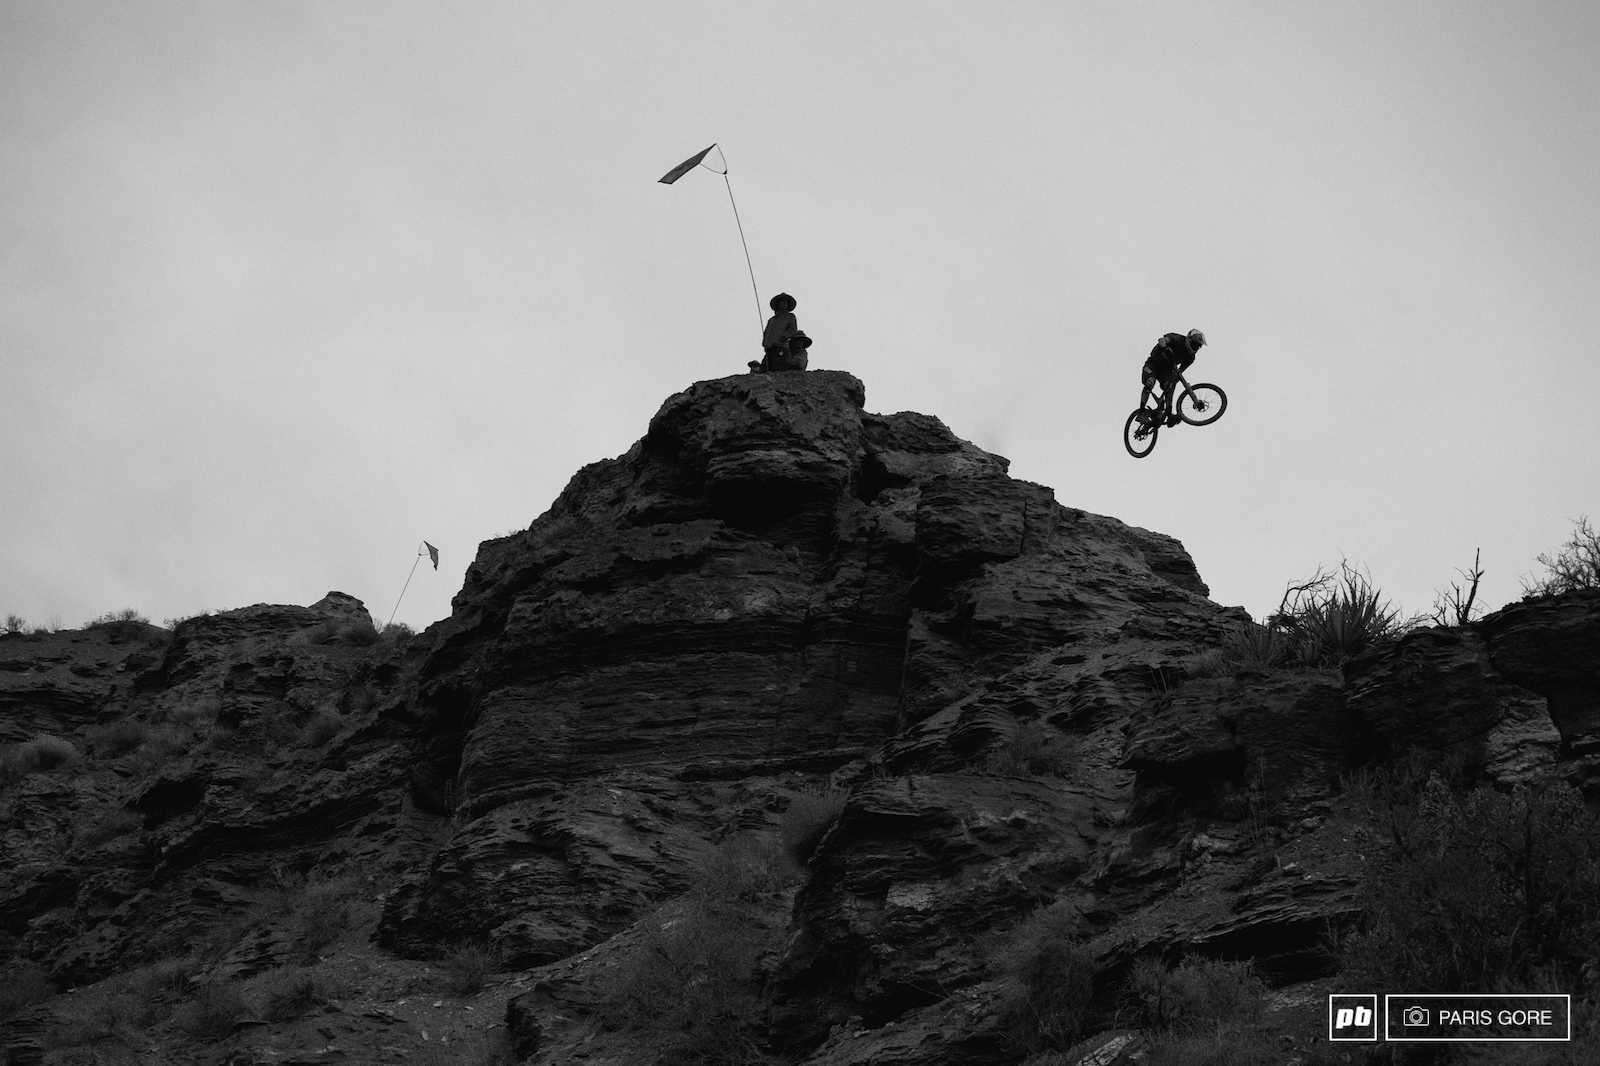 Tomas Genon ripping down the middle ridge during the last light.